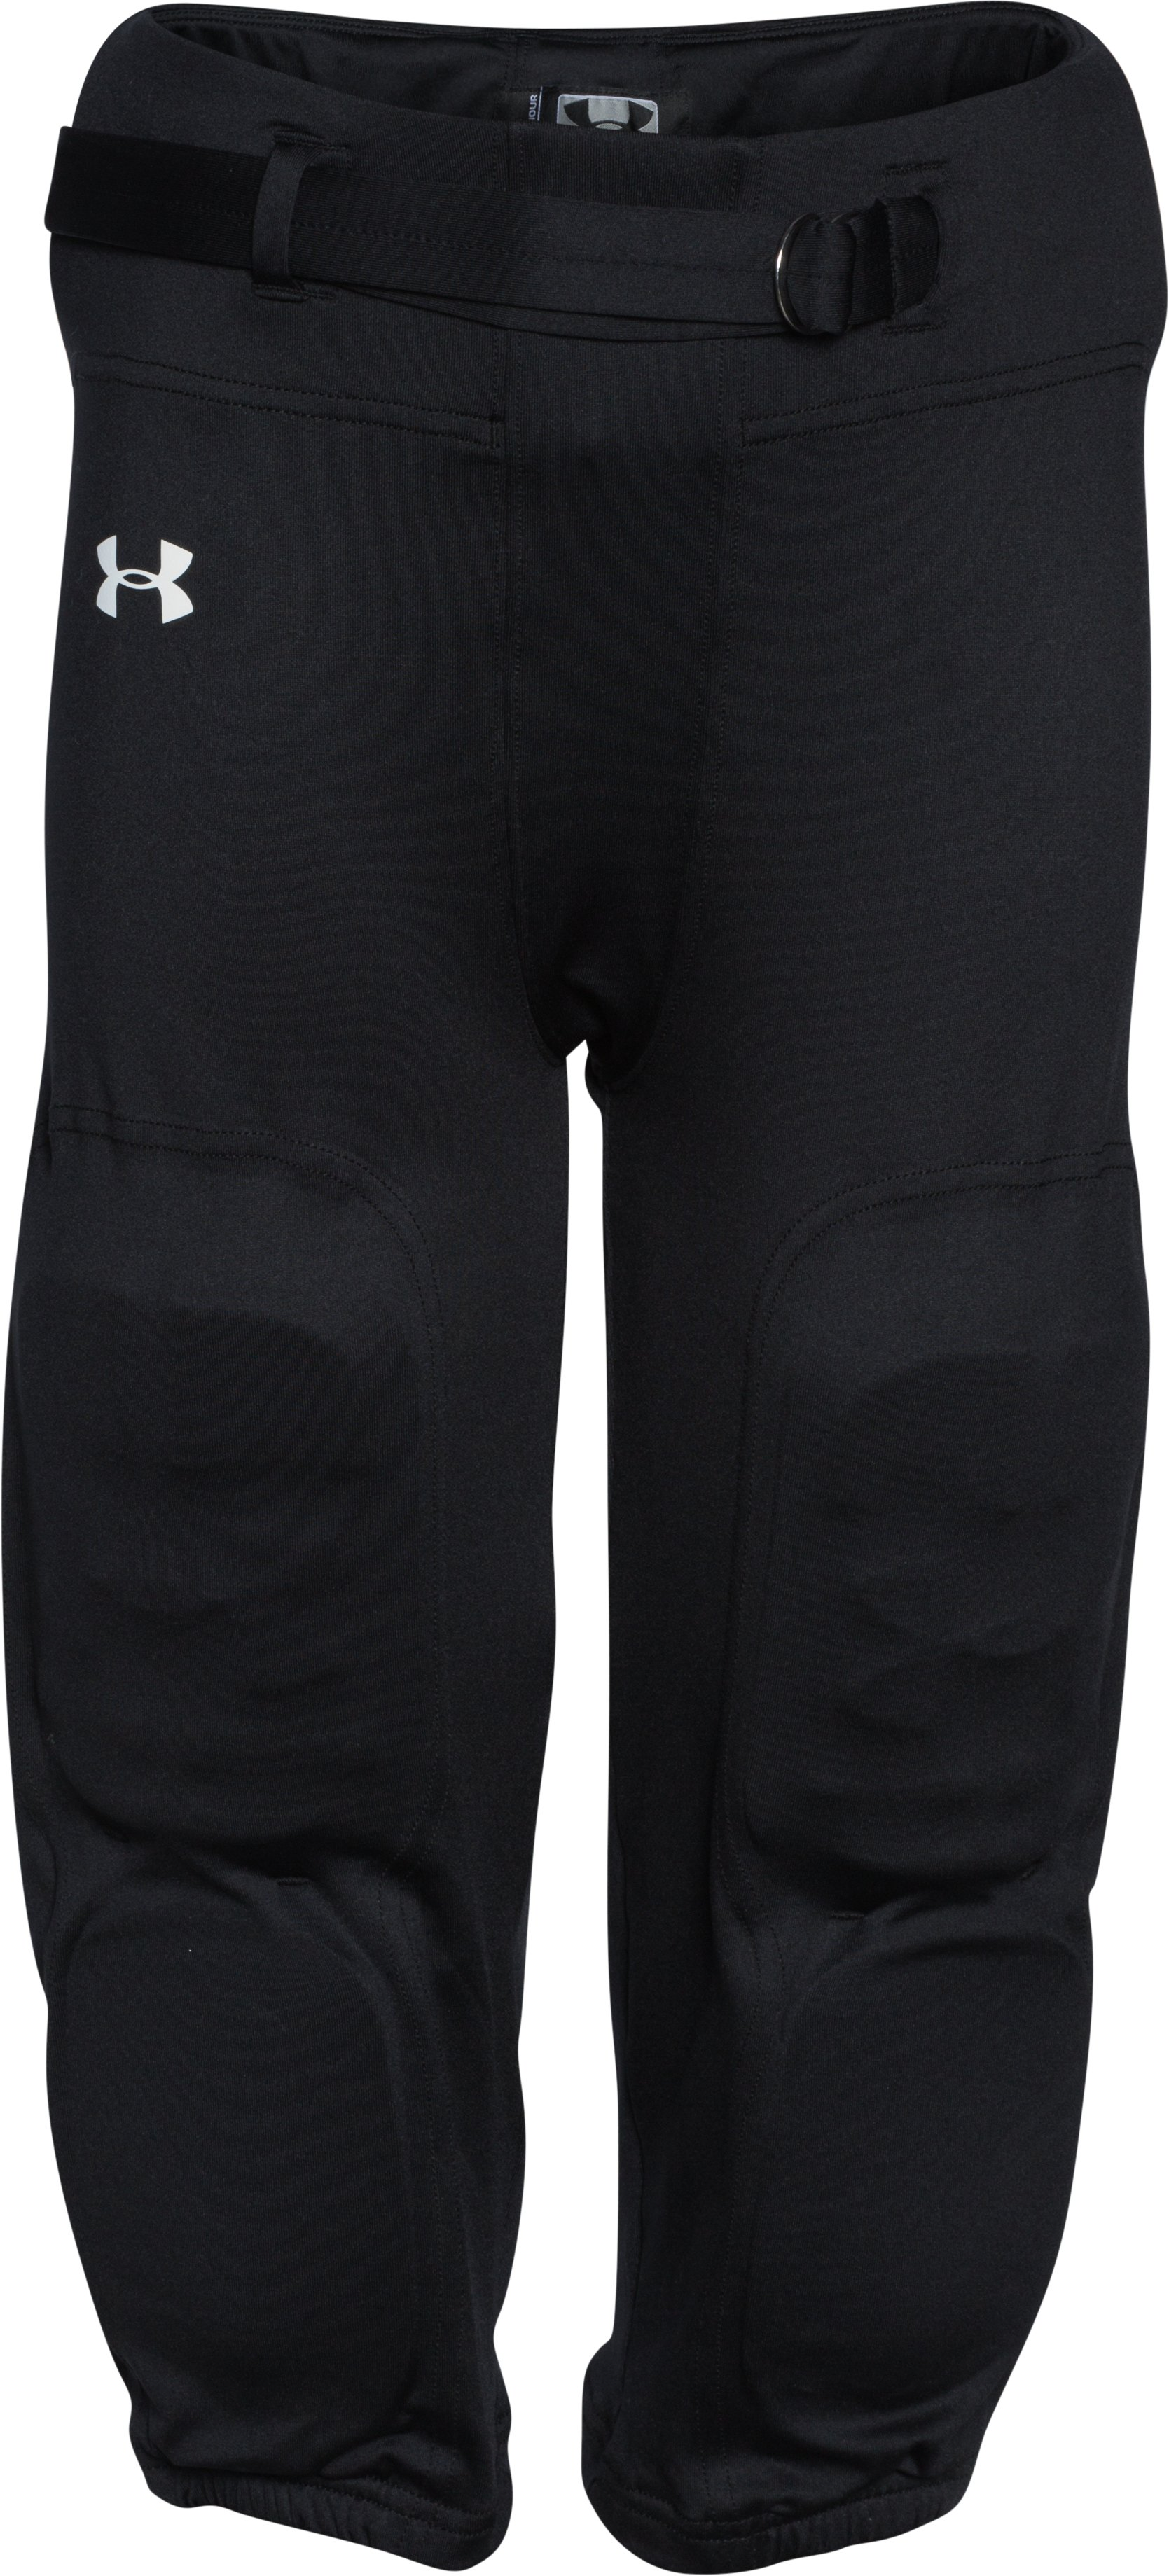 stretch football pants Boys' UA Integrated Football Pants 4-way <strong>stretch</strong> construction moves better in every direction.